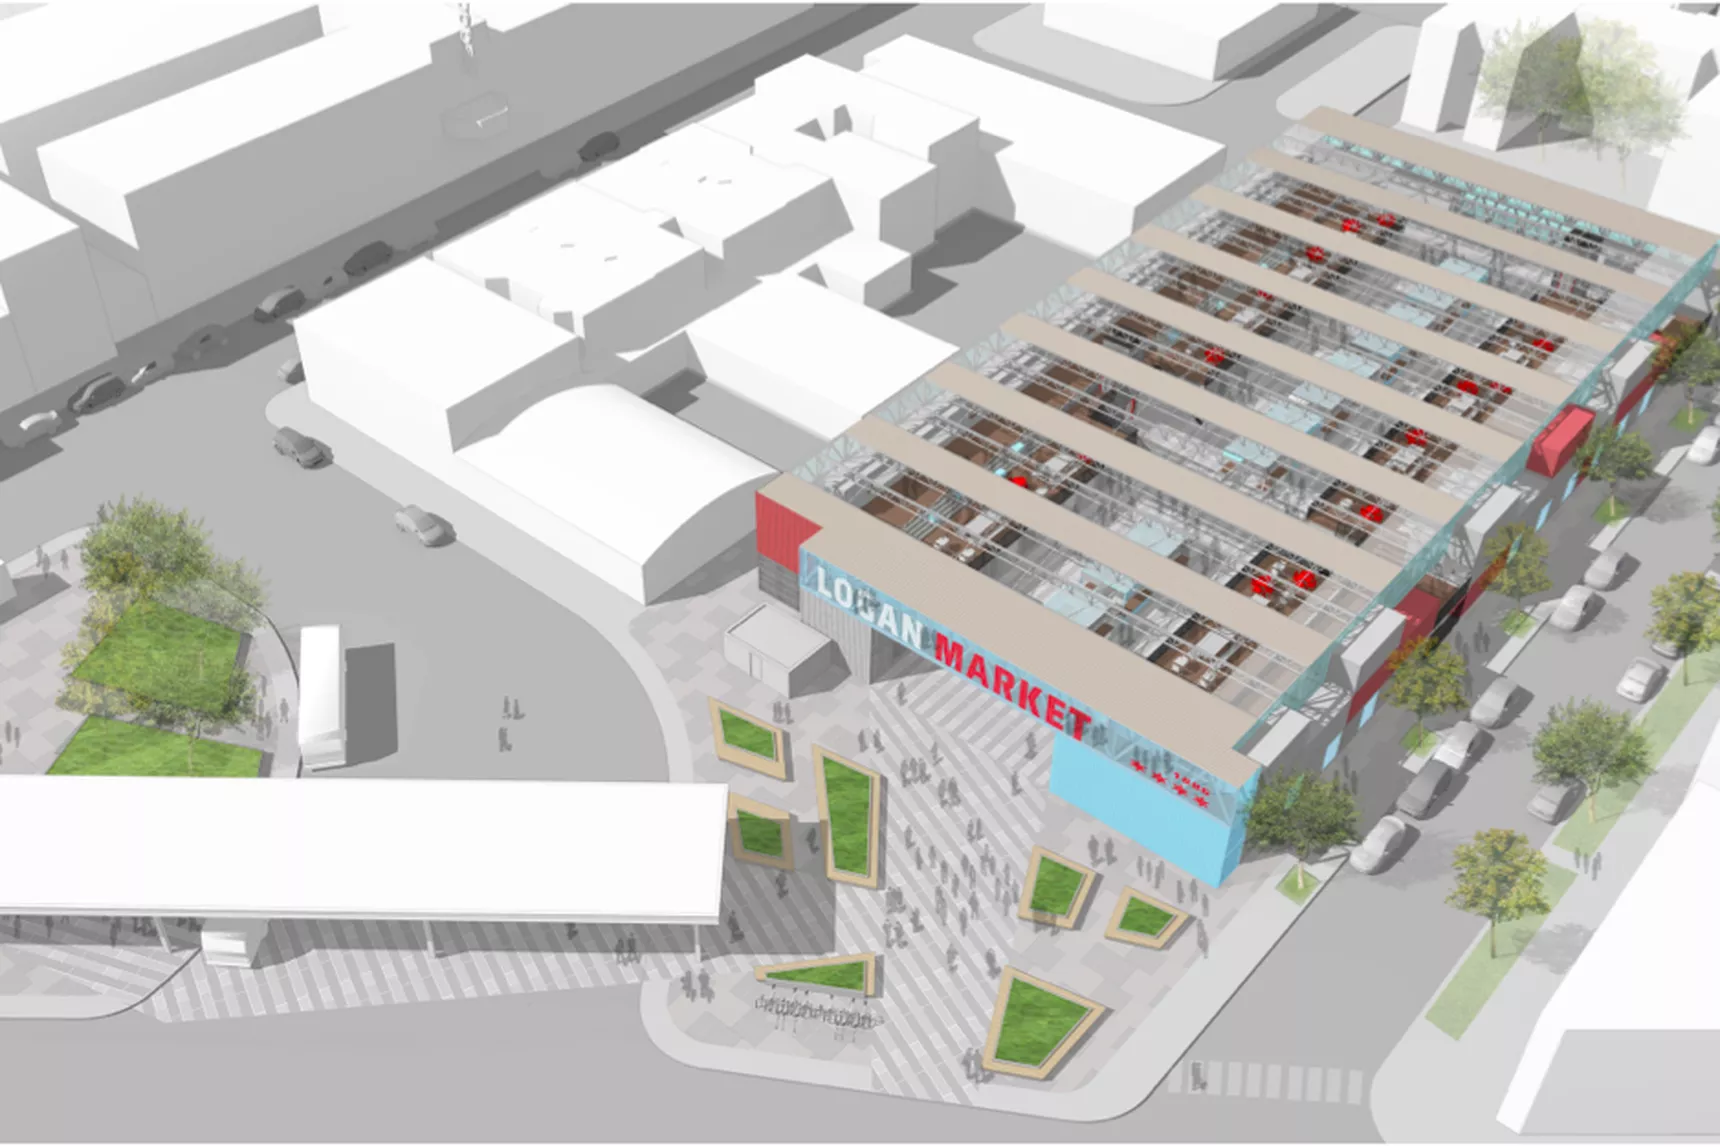 3 Car Garage Plans With Apartment Above Emmett St Parking Lot Open Air Market Or 100 Percent